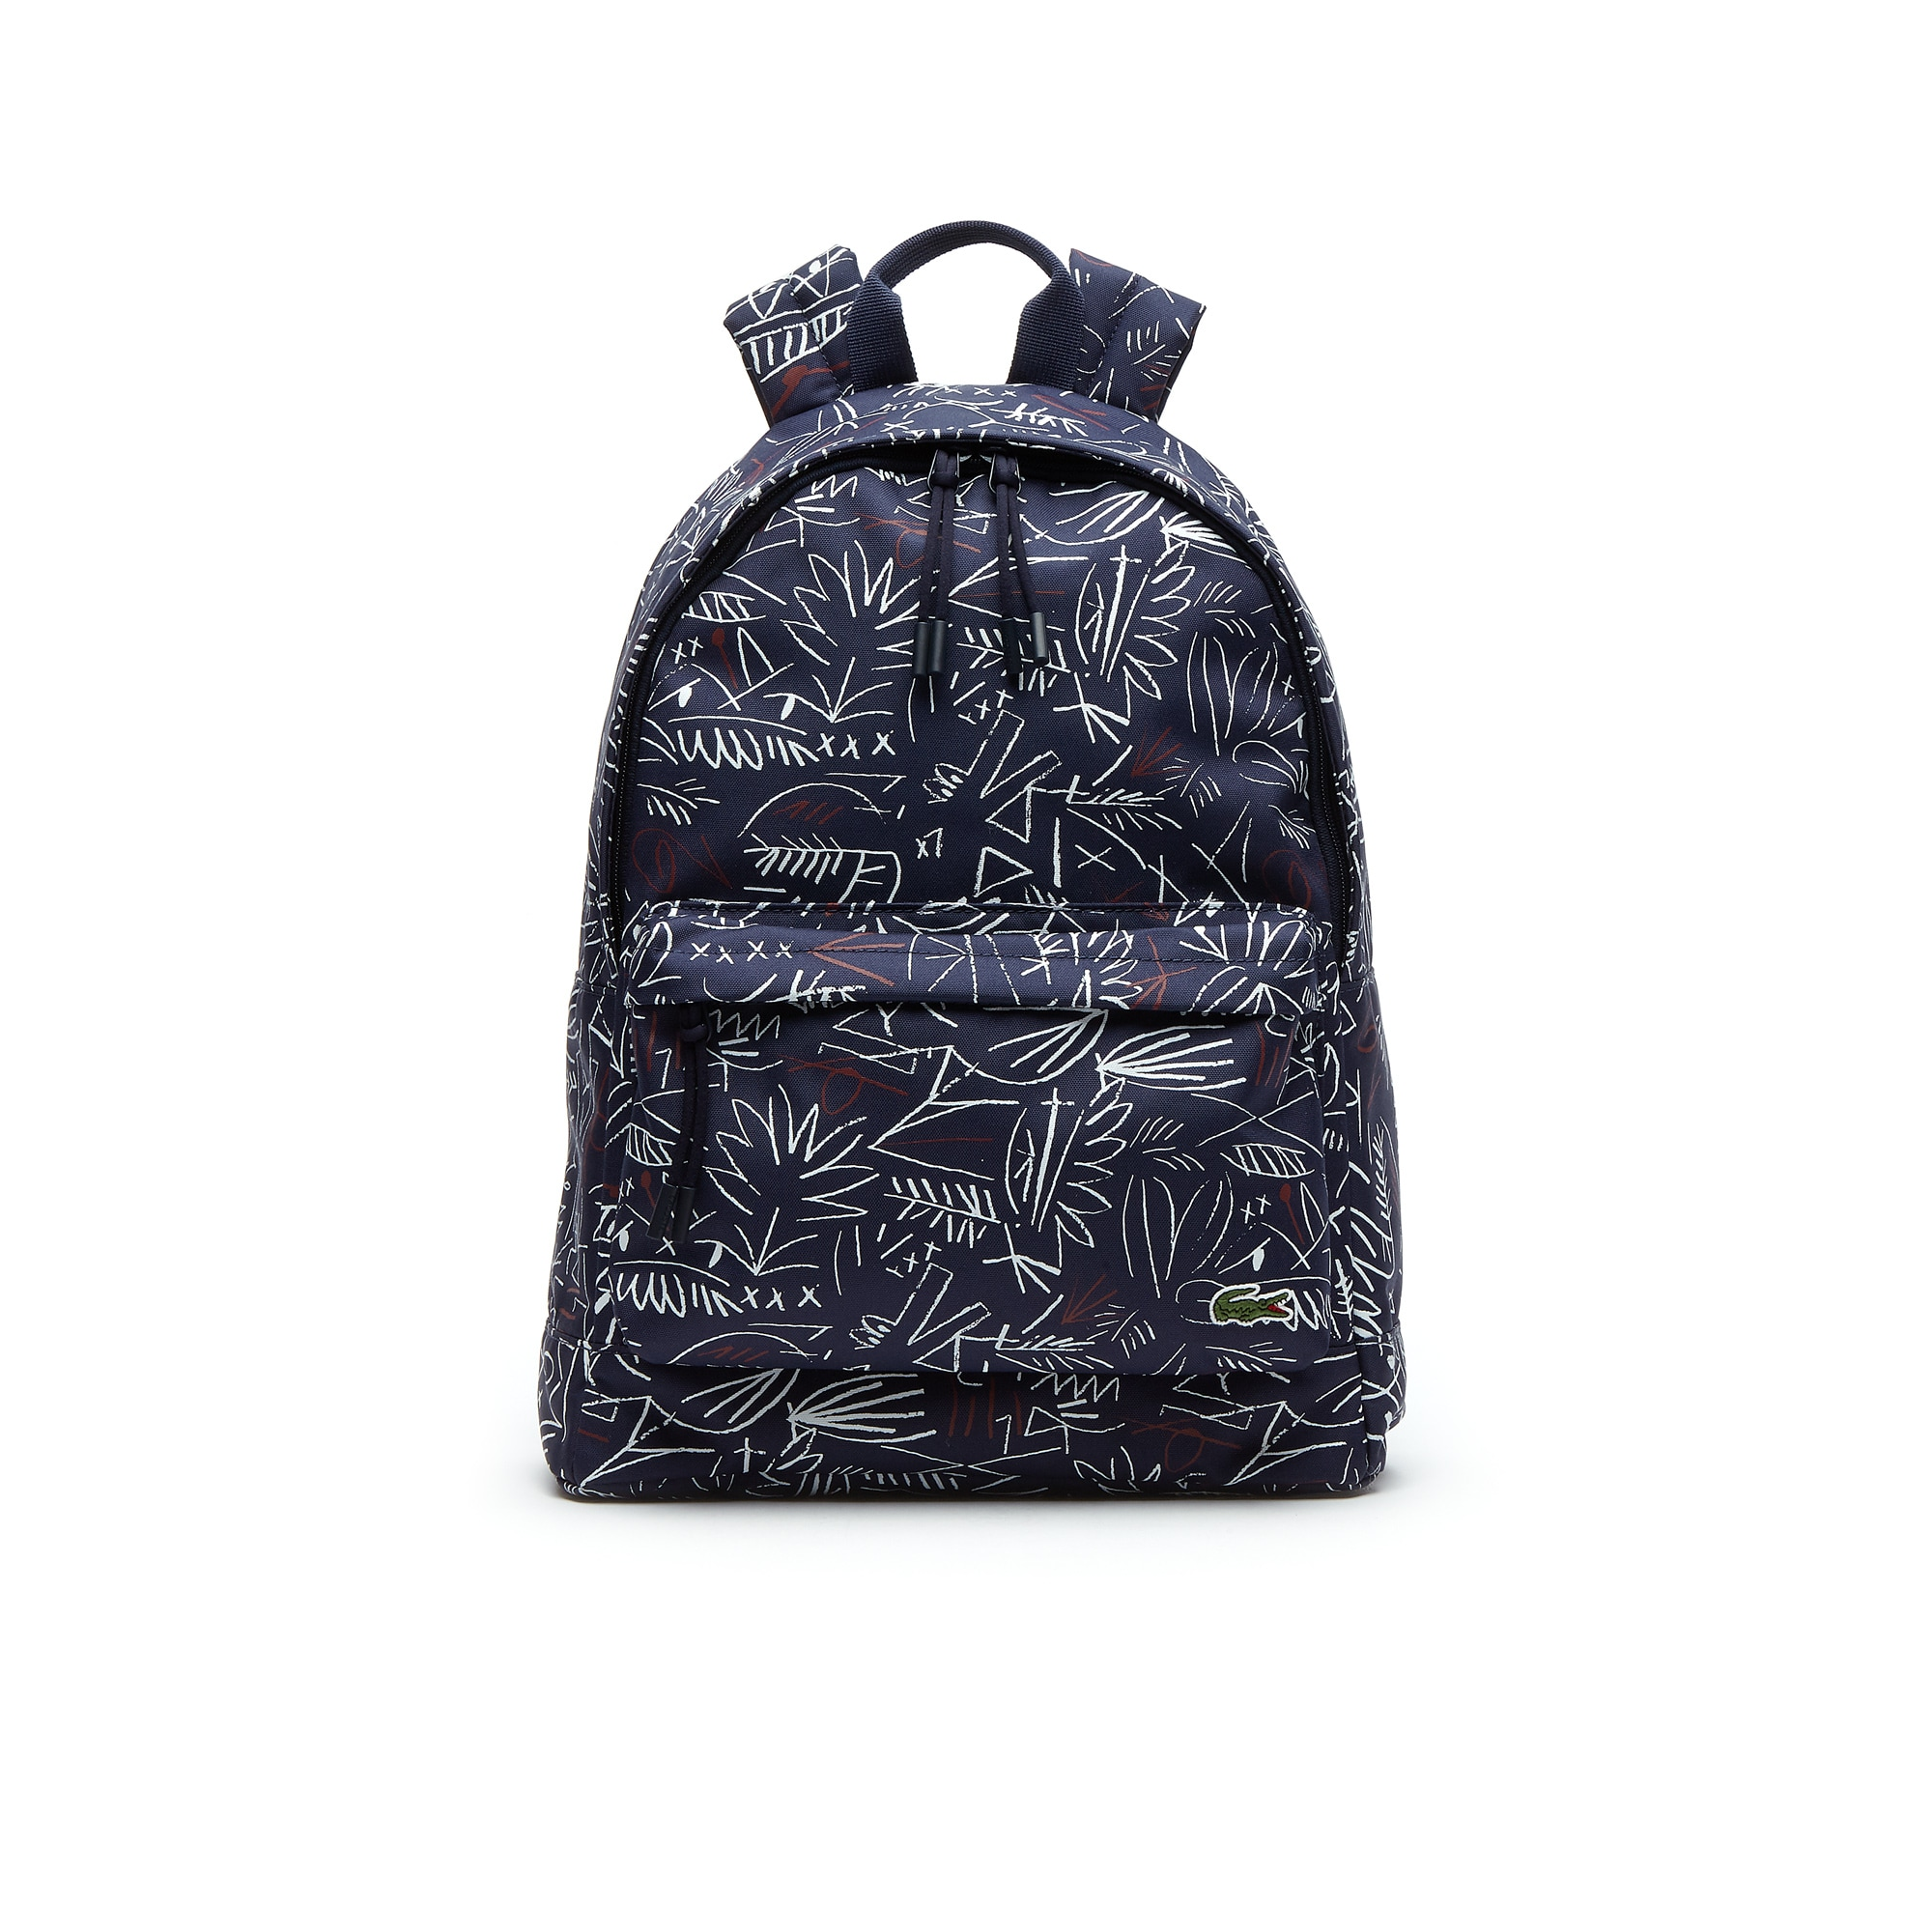 Men's Néocroc Egyptian Graphic Print Canvas Backpack